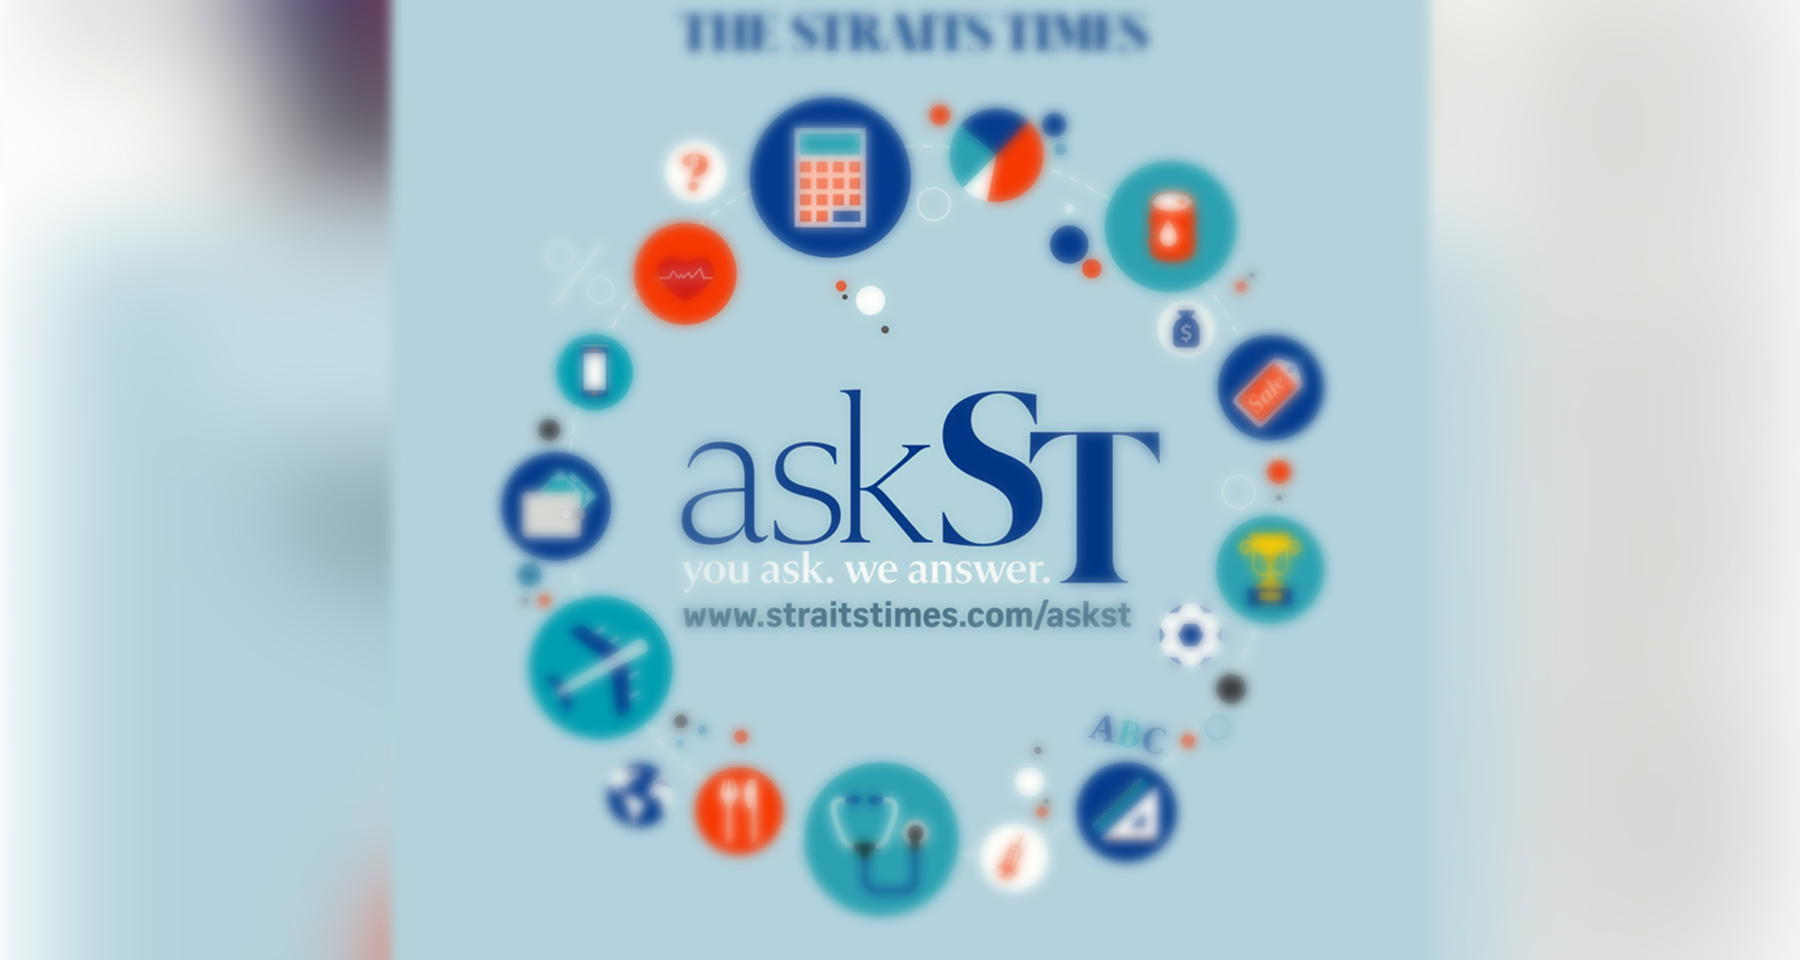 Straits Times debuts interactive ads for digital edition